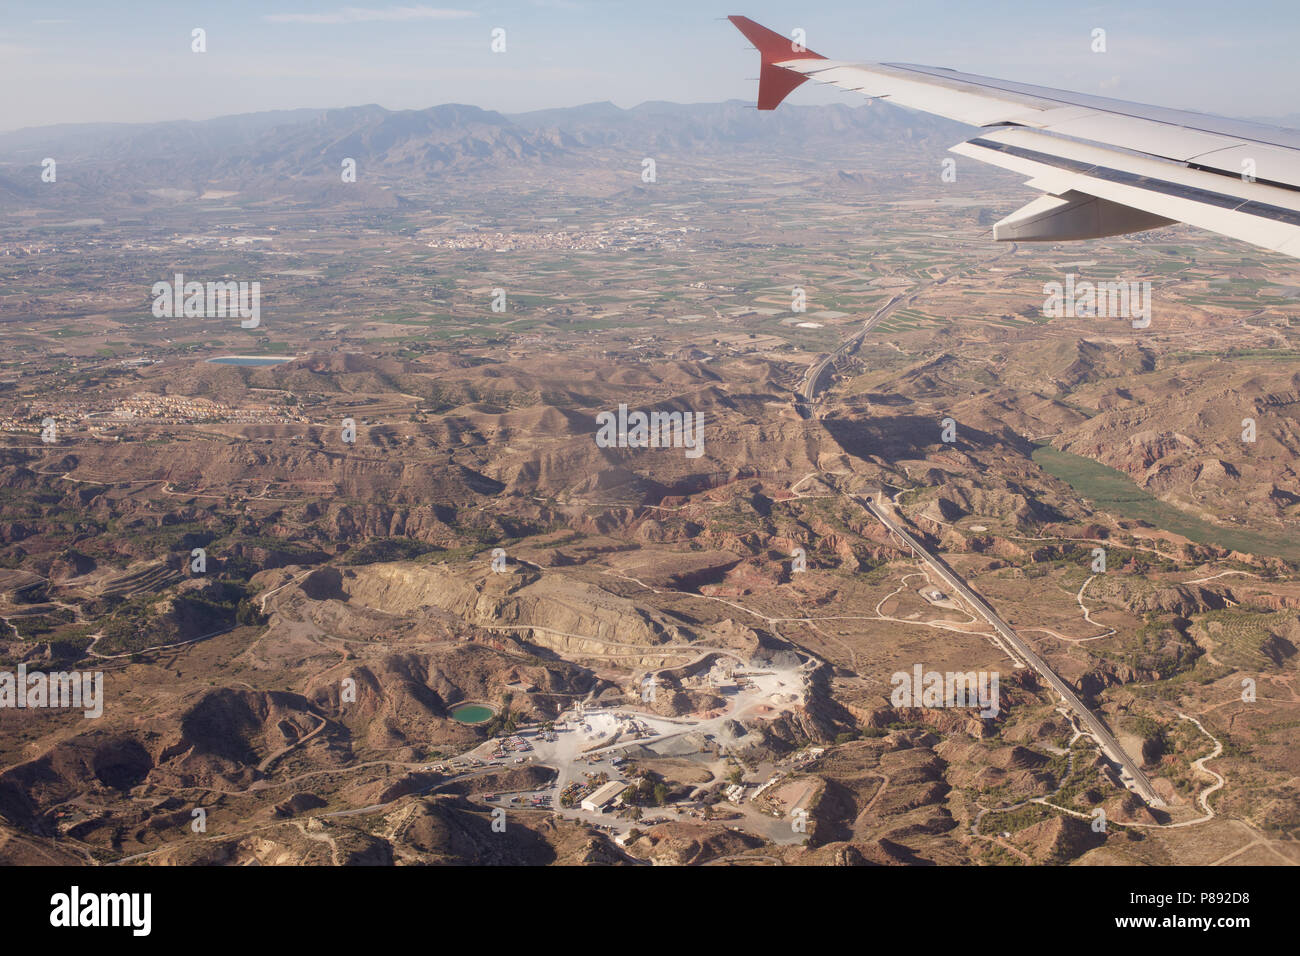 AVE High Speed Railway line in the countryside of Alicante Province in Spain viewed from an aircraft - Stock Image